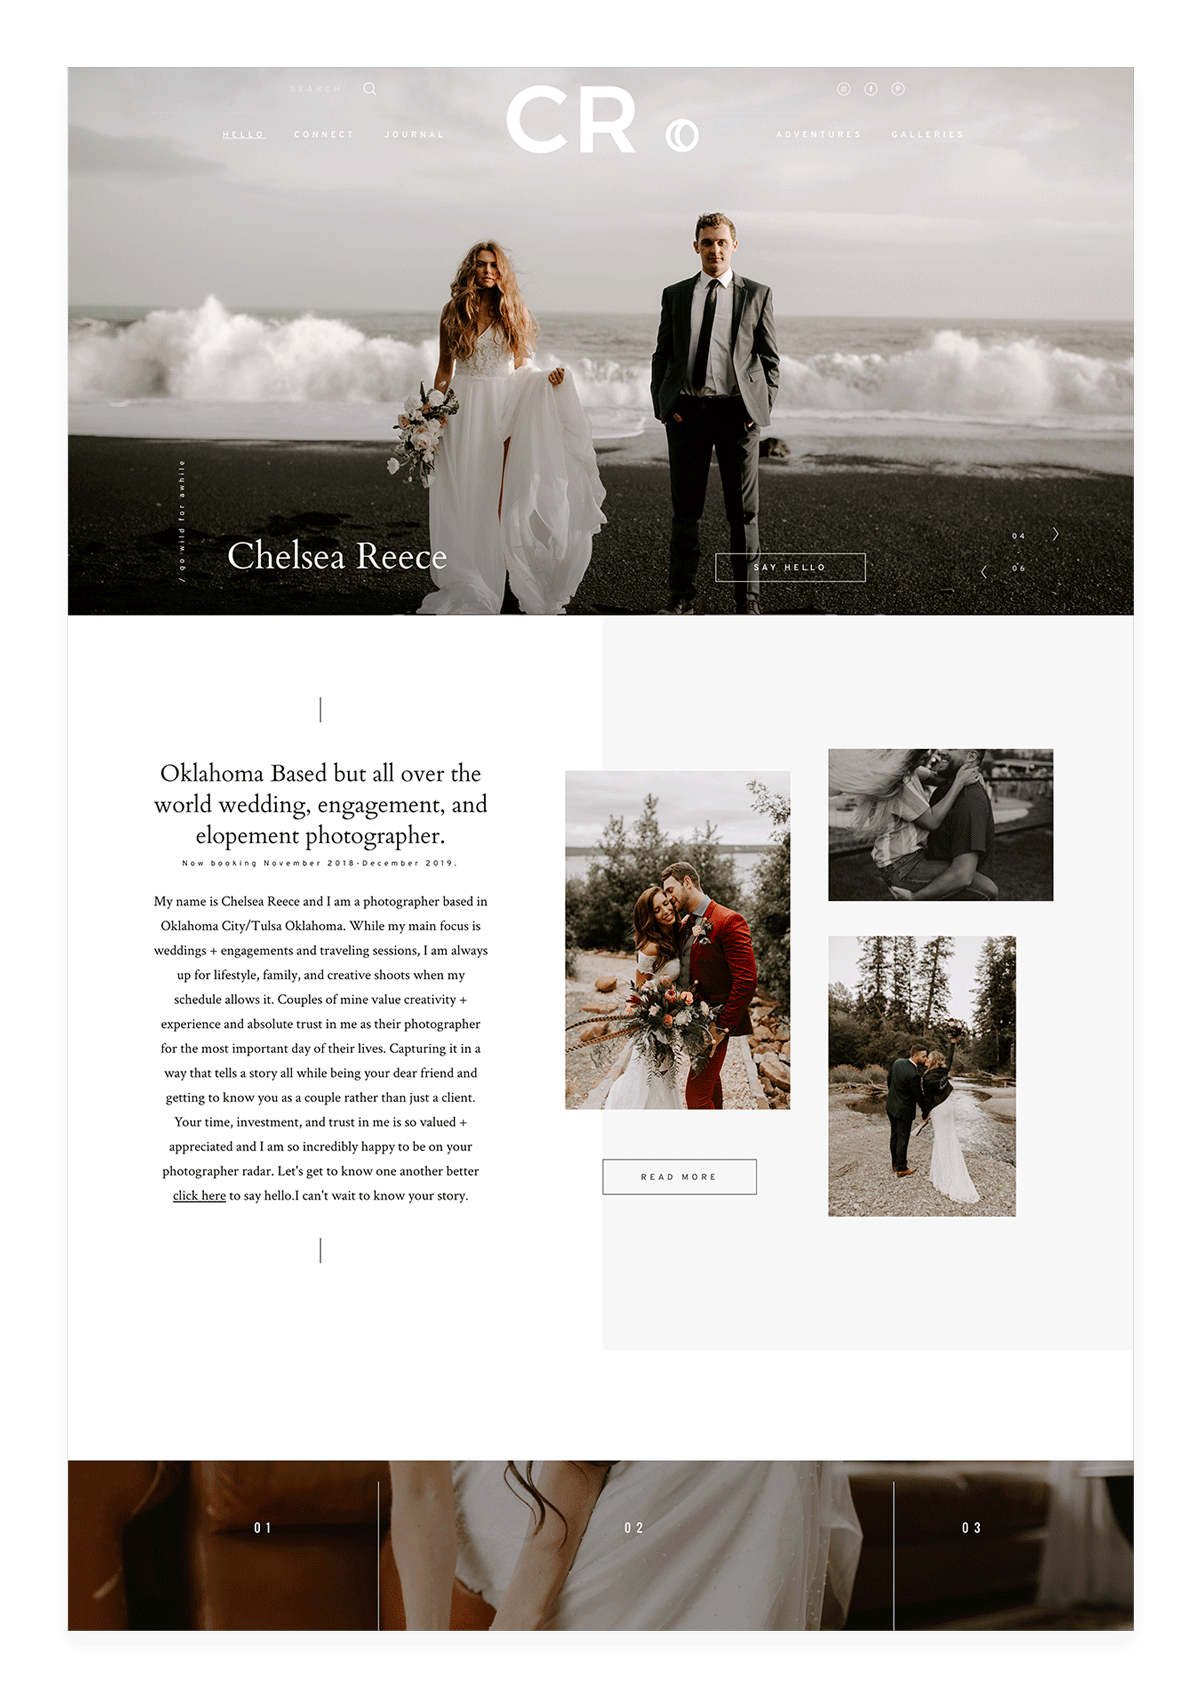 Inspirational-photography-website--destination-wedding-photography---chelsea-reece